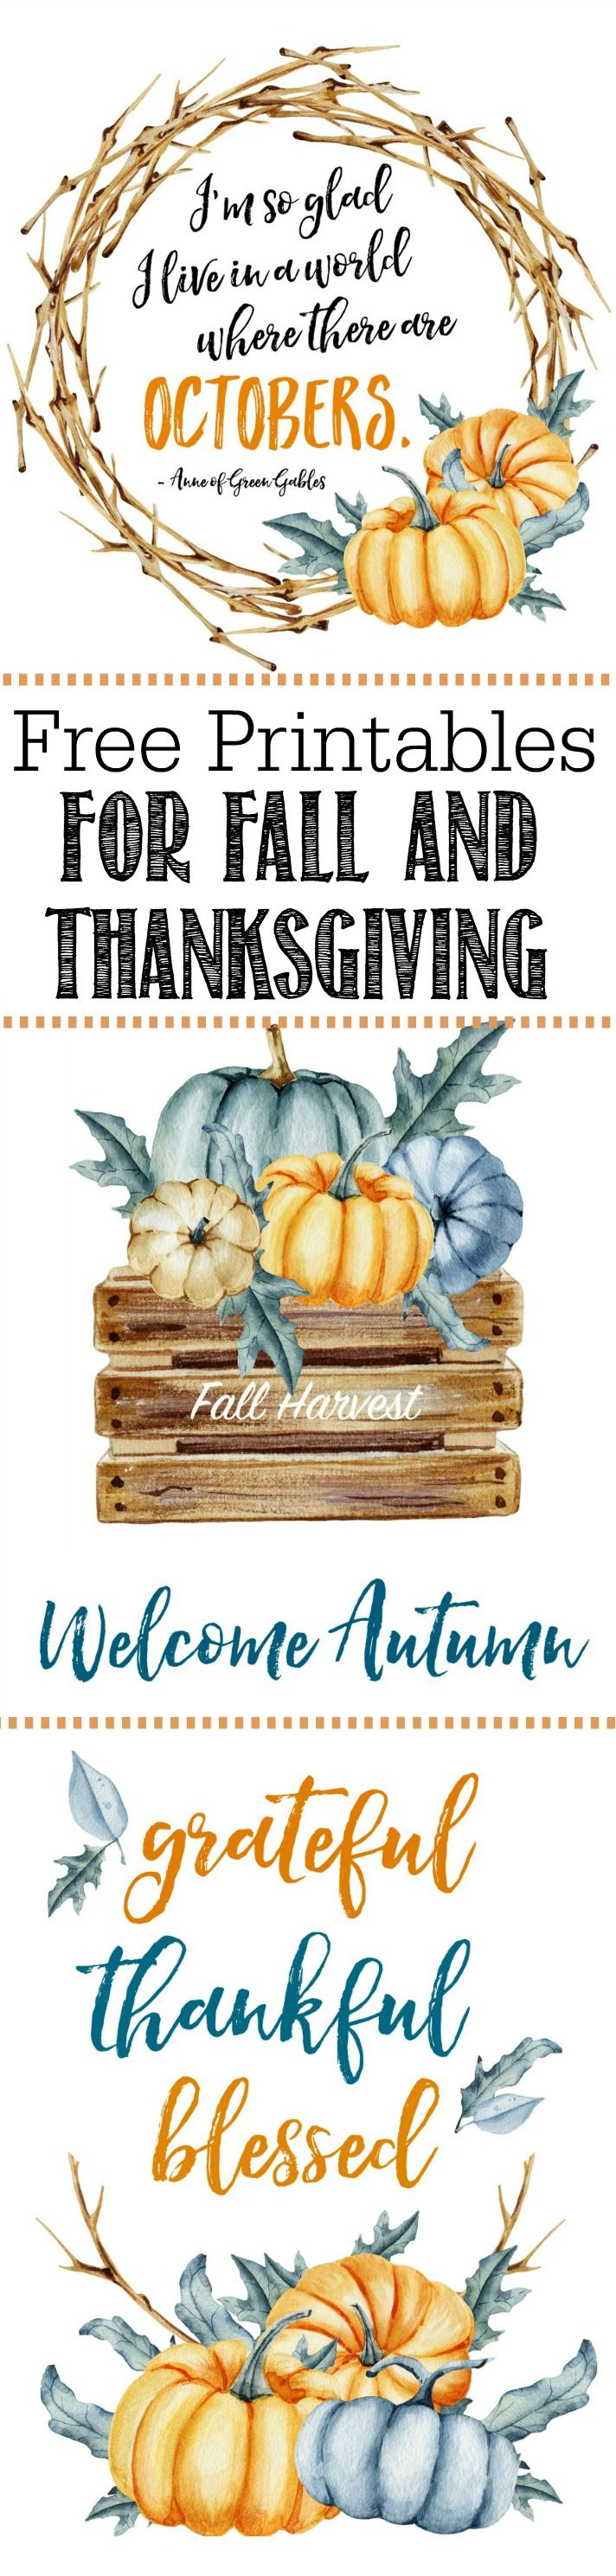 Free Thanksgiving and Fall Printables